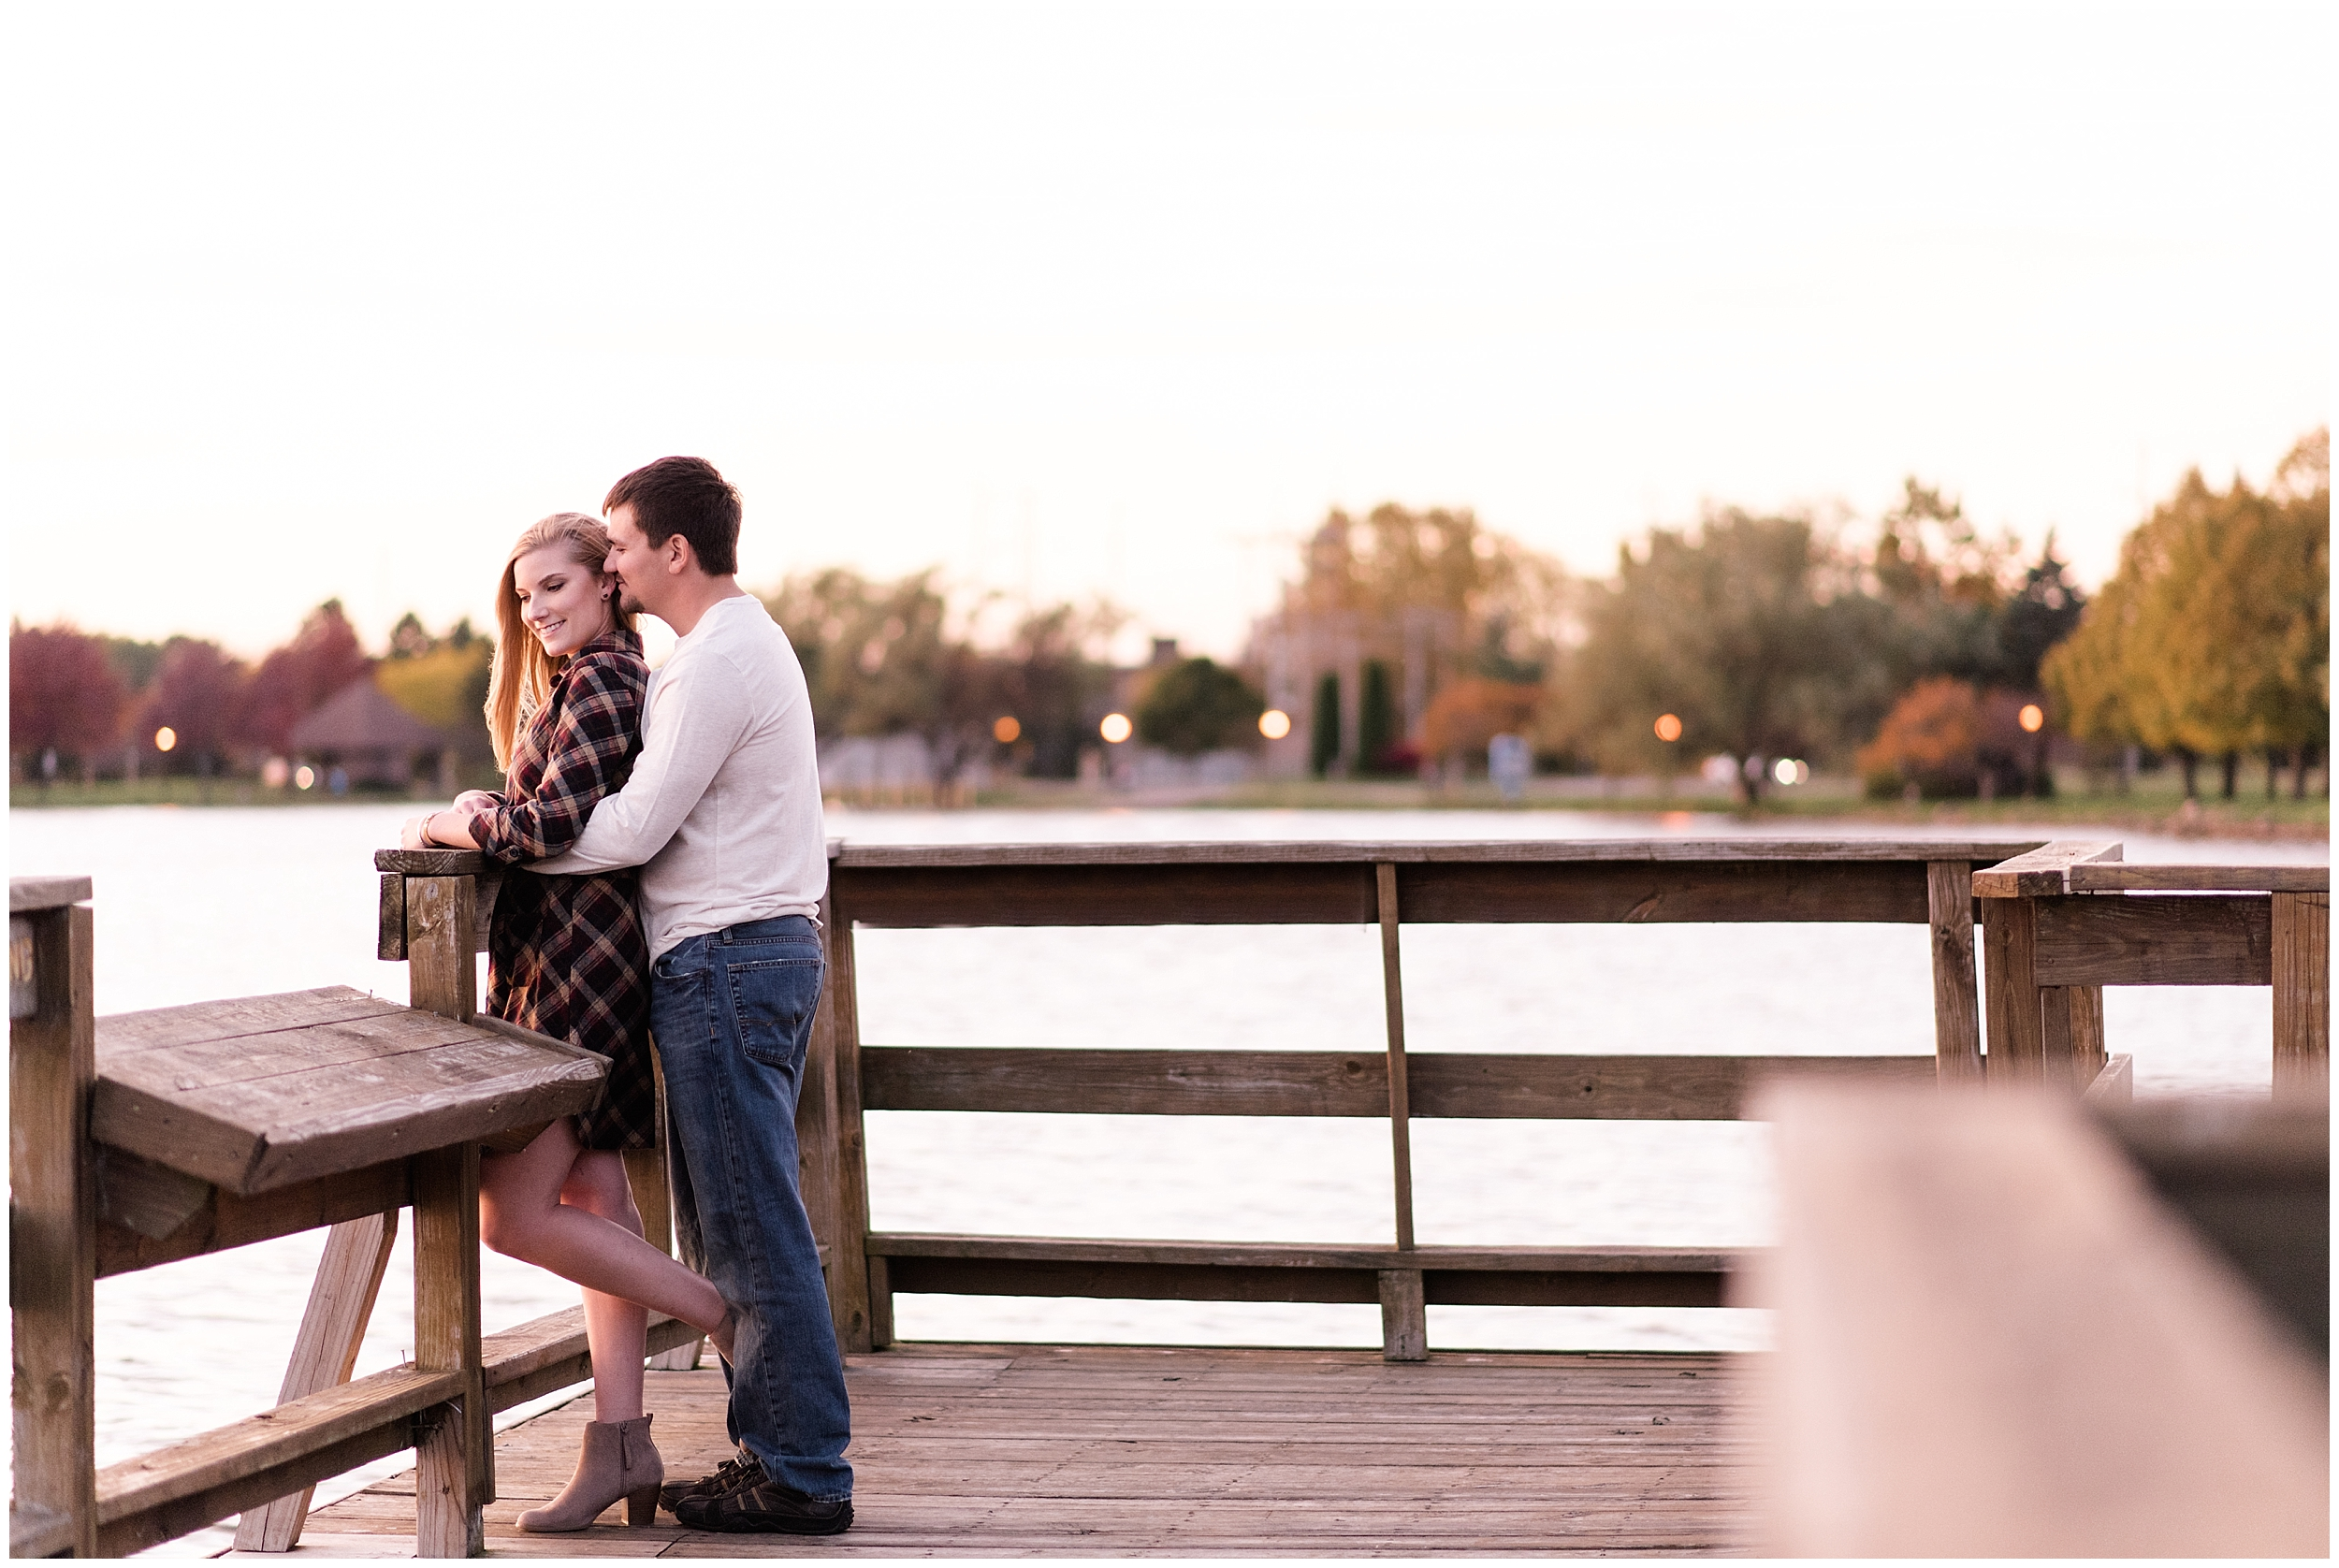 Weddings_by_Raisa_Photography_Cadillac_Michigan_October_Fall_Engagement_Milwaukee_Wisconsin_Photographer_0026.jpg